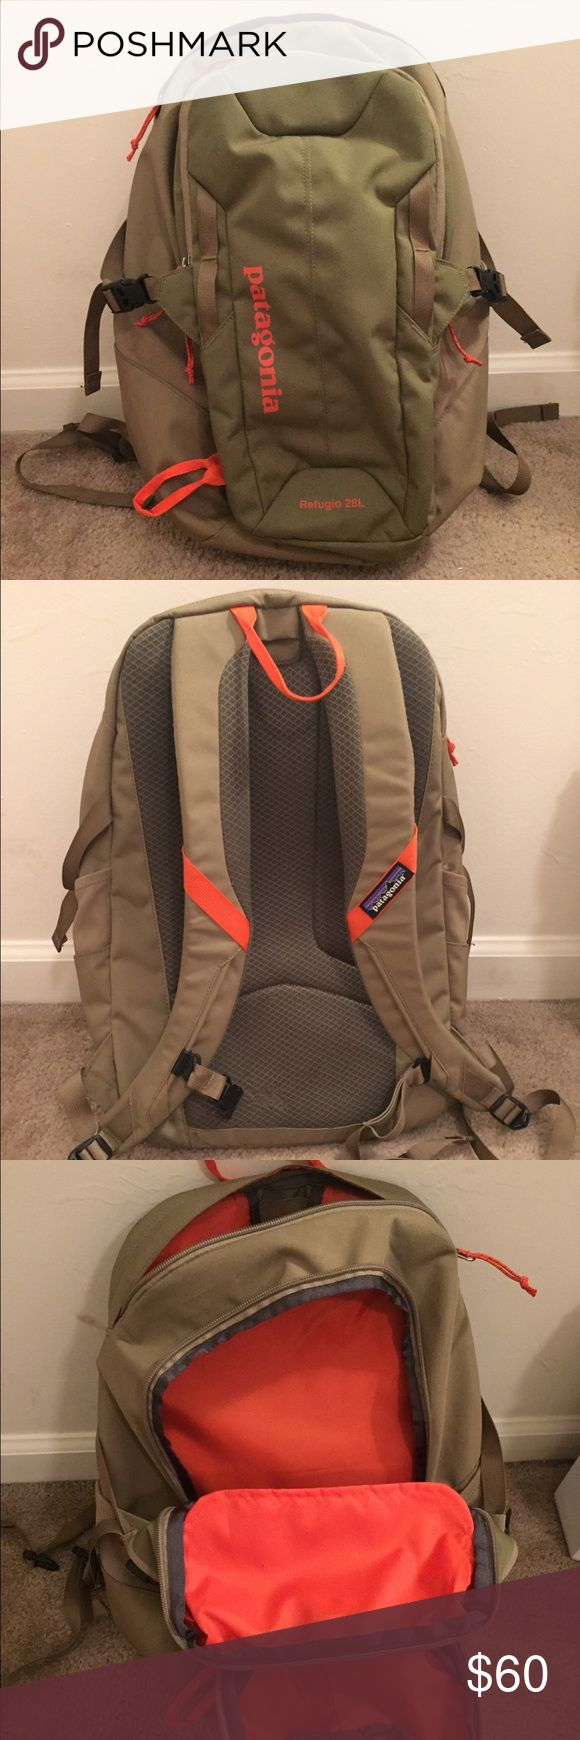 Patagonia Refugio 28L Backpack (Green and Pink) Gently used olive green and pink Refugio 28L backpack. Has a laptop compartment, book compartment, small top and small front compartments, and two water bottle side holders. Straps are adjustable. Patagonia Bags Backpacks